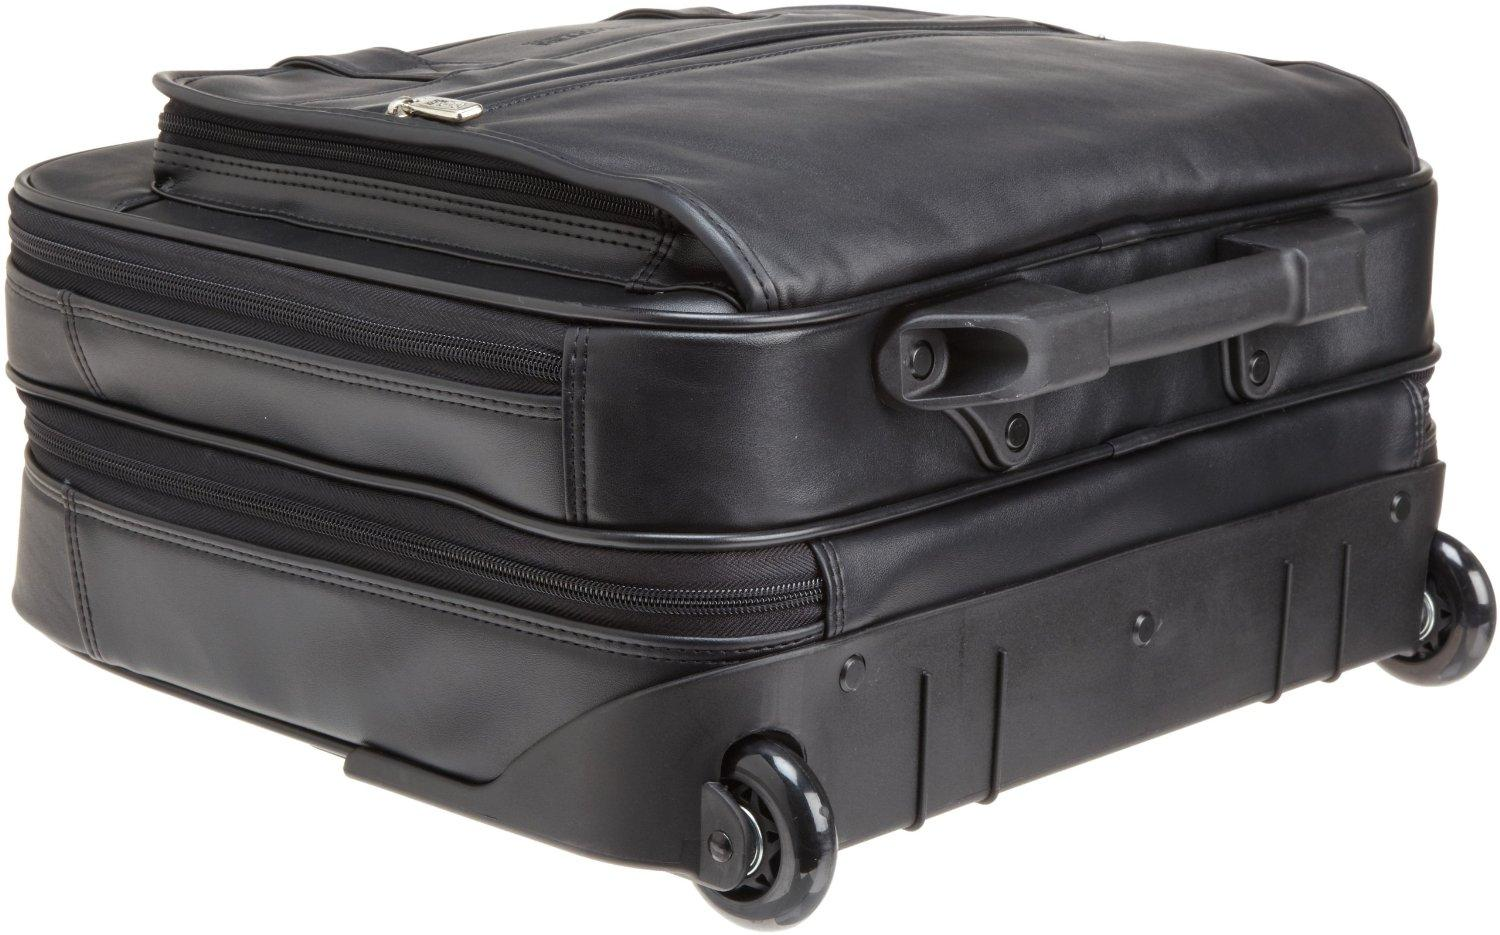 Discounted Kenneth Cole Reaction Luggage Keep On Rollin